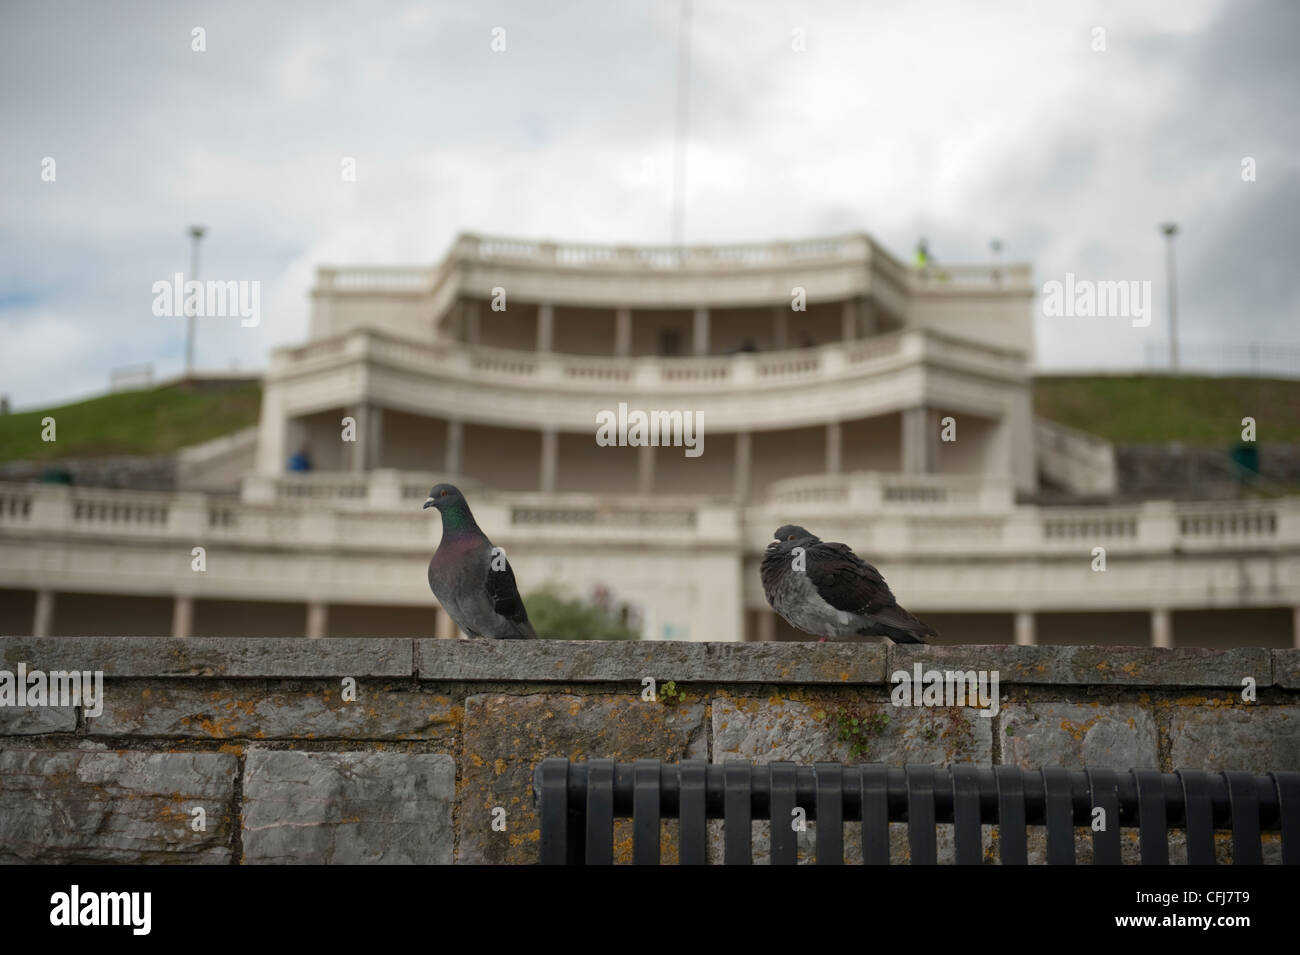 Two pigeons sit on a wall on Plymouth Hoe in front of the bandstand. - Stock Image